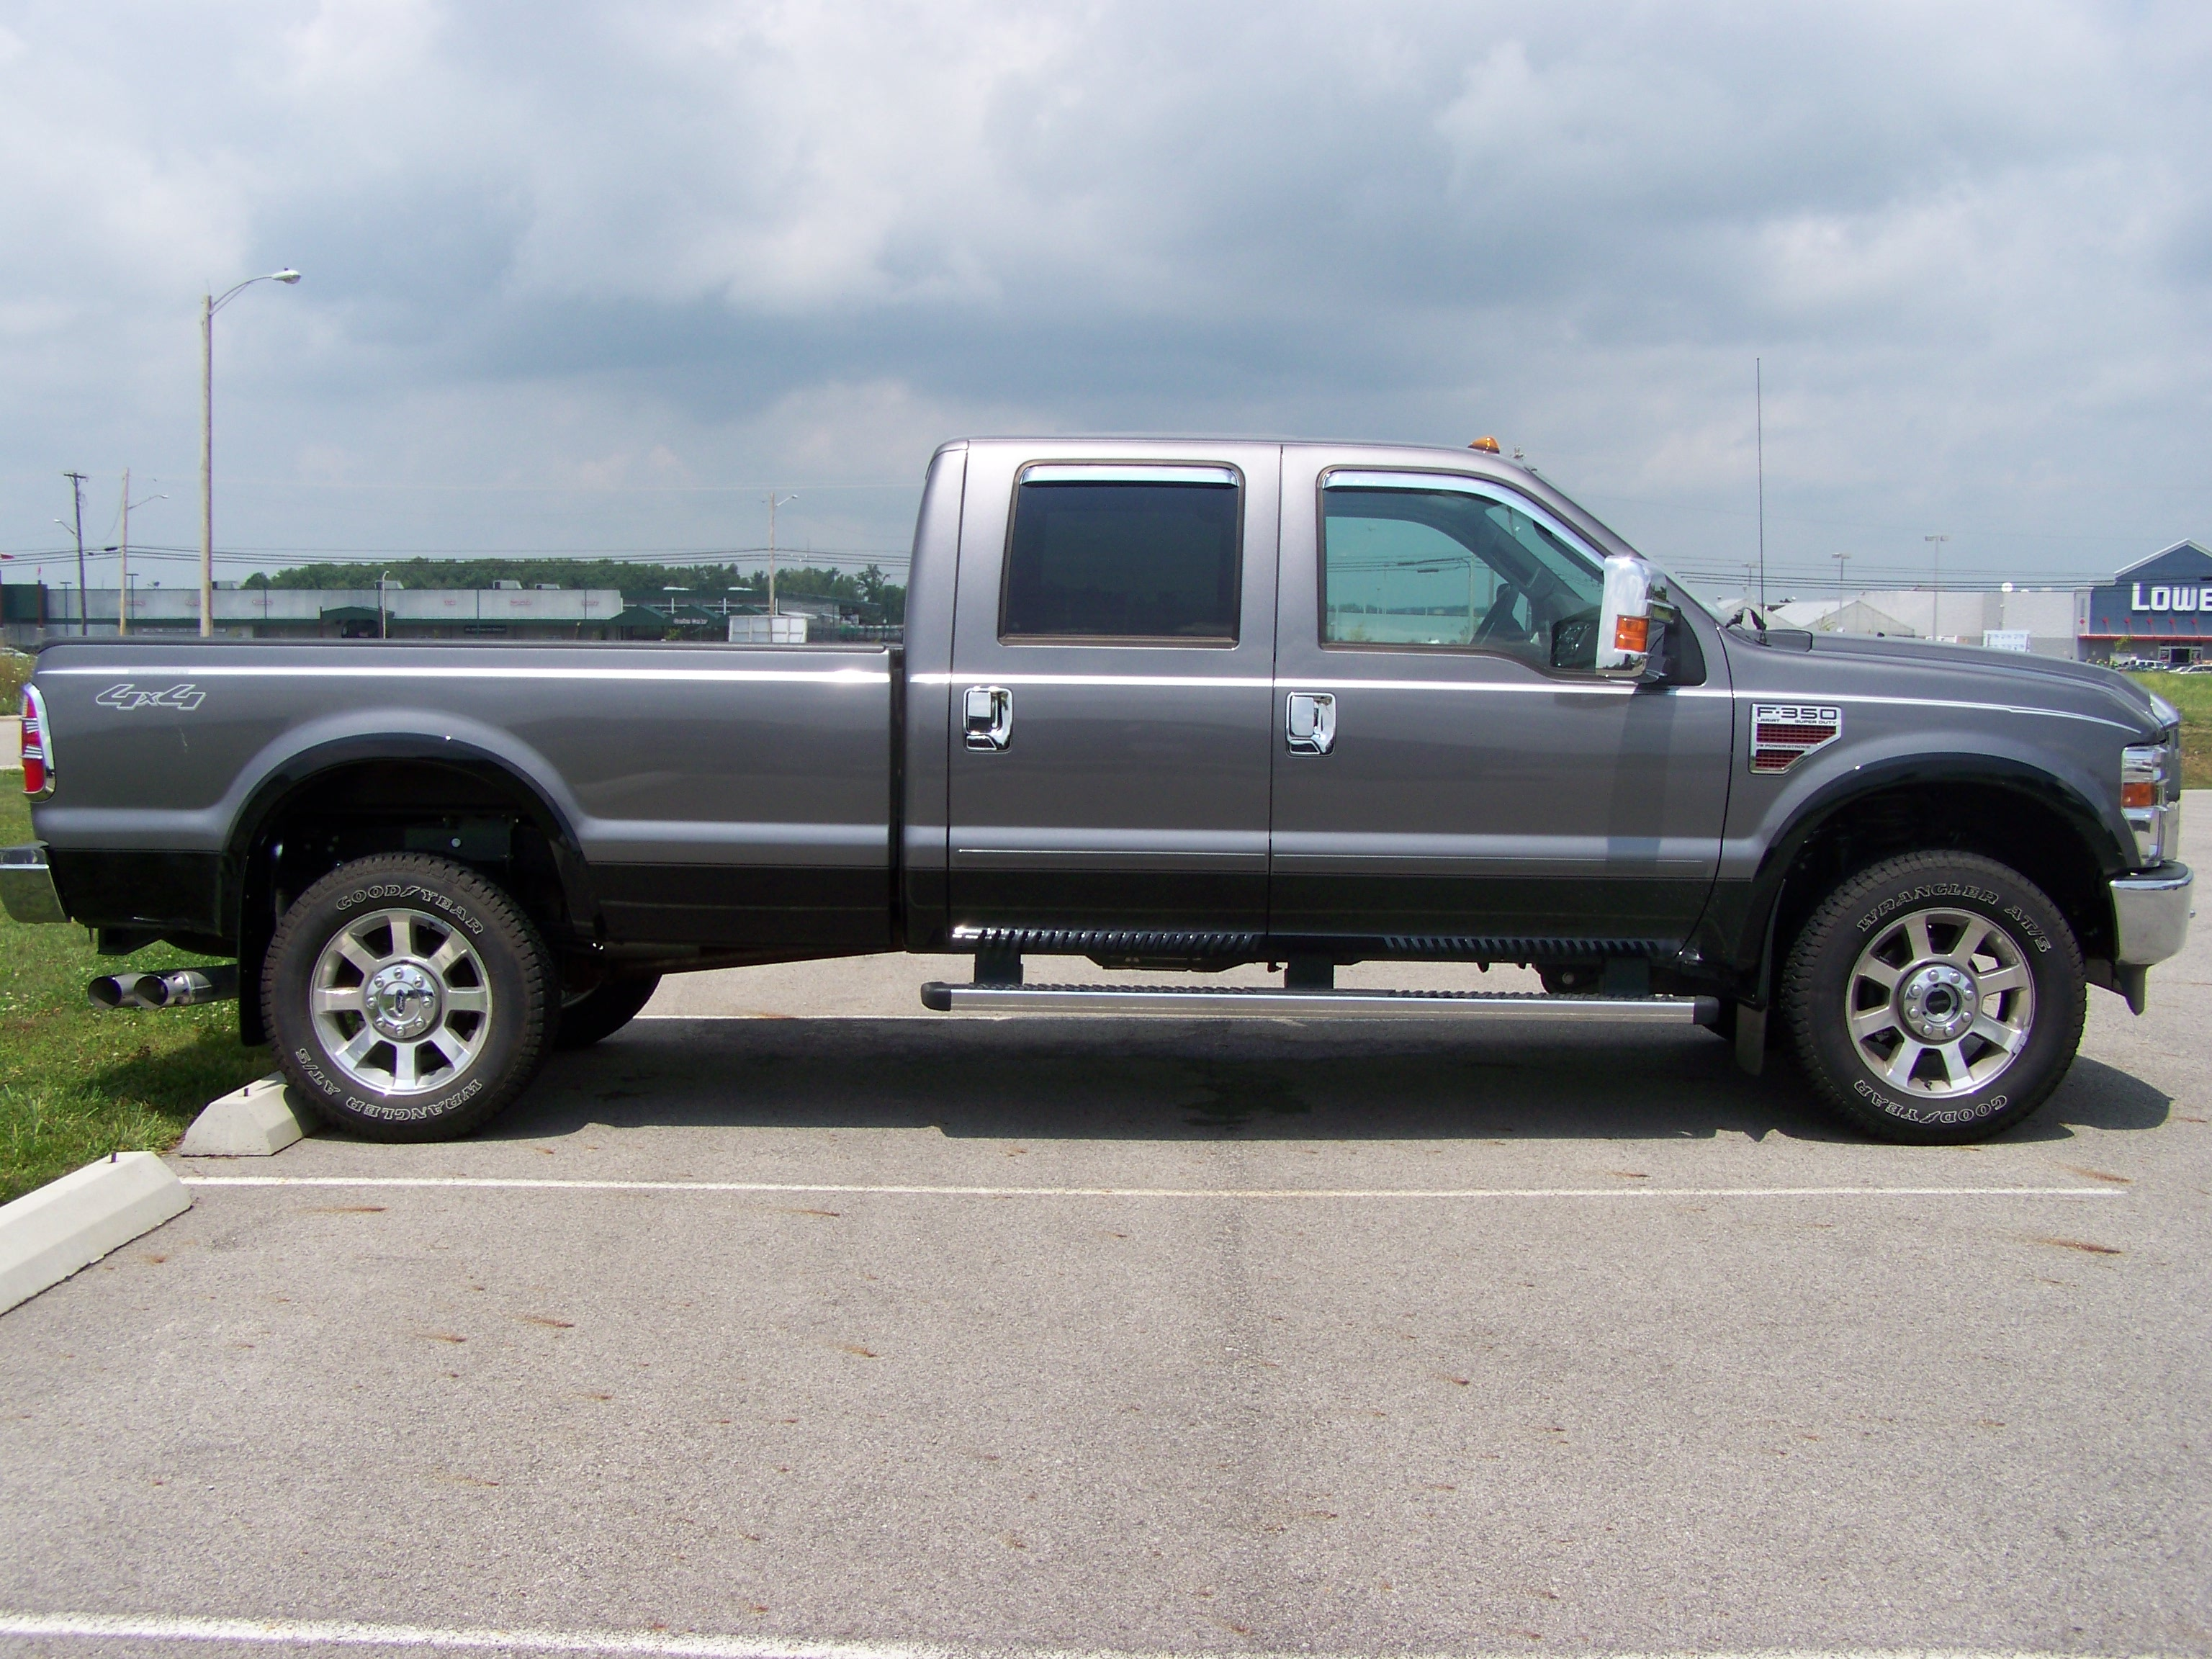 Truck Lift Kits Truck Lift Kit Installation Truck Lift